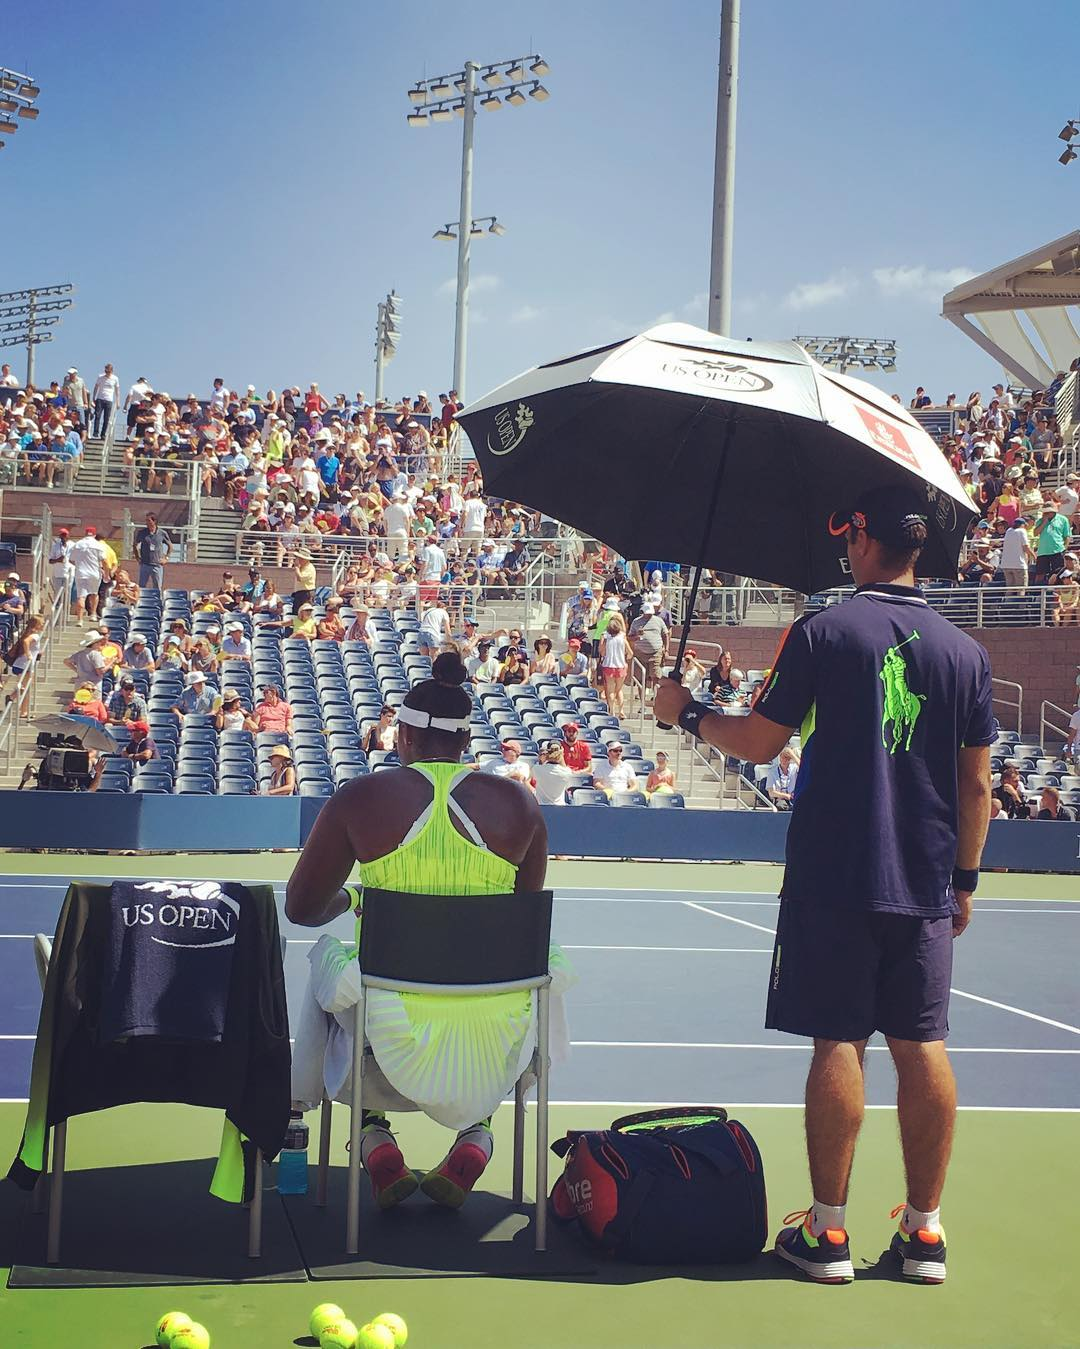 The heat at the US Open was no joke. Players between games would need to be iced down and sit in the shade.